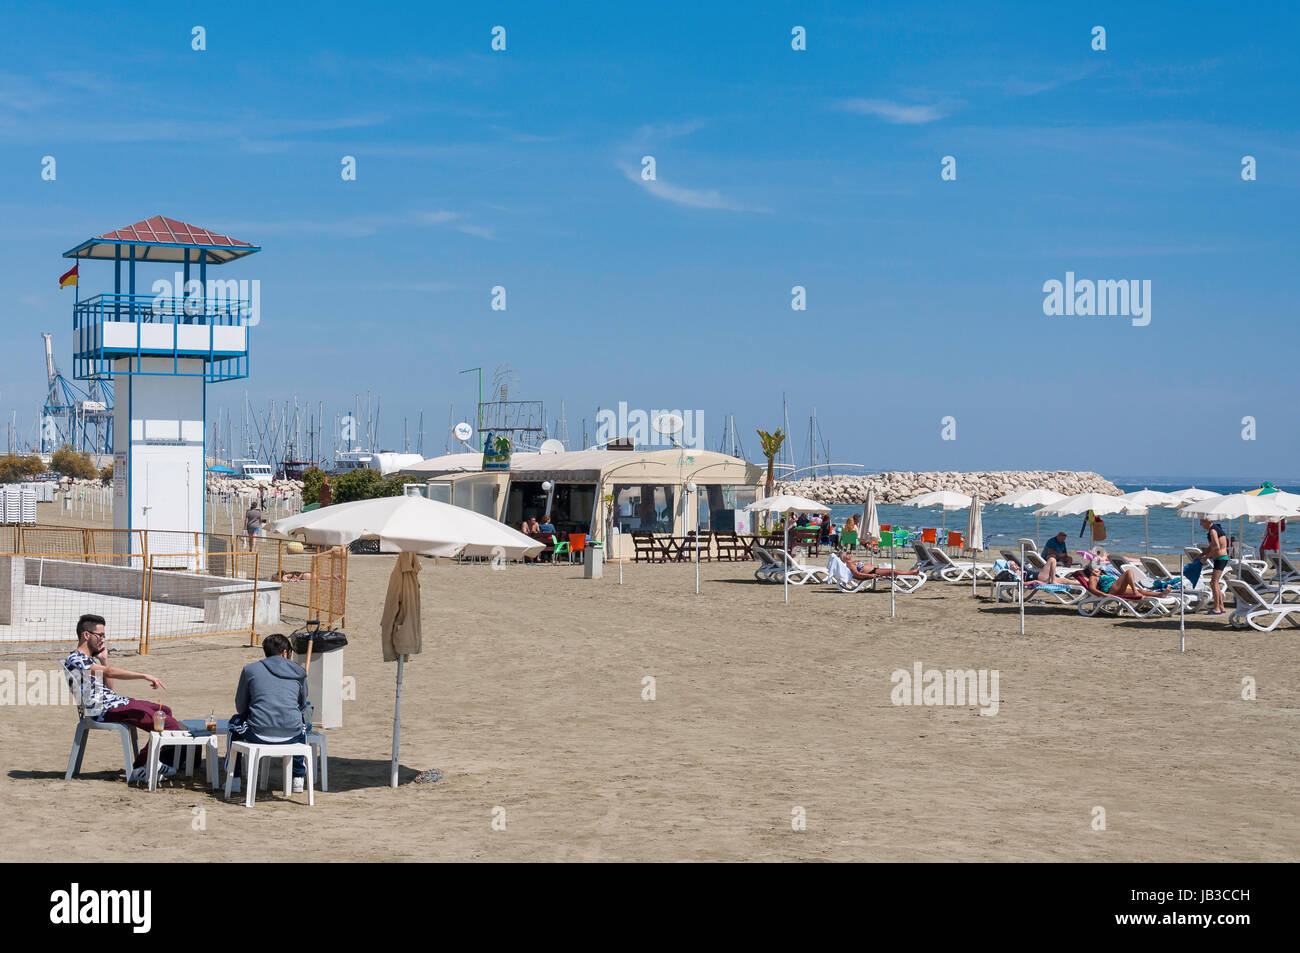 Phoinikoudes Beach, Larnaca, Larnaca District, Republic of Cyprus - Stock Image